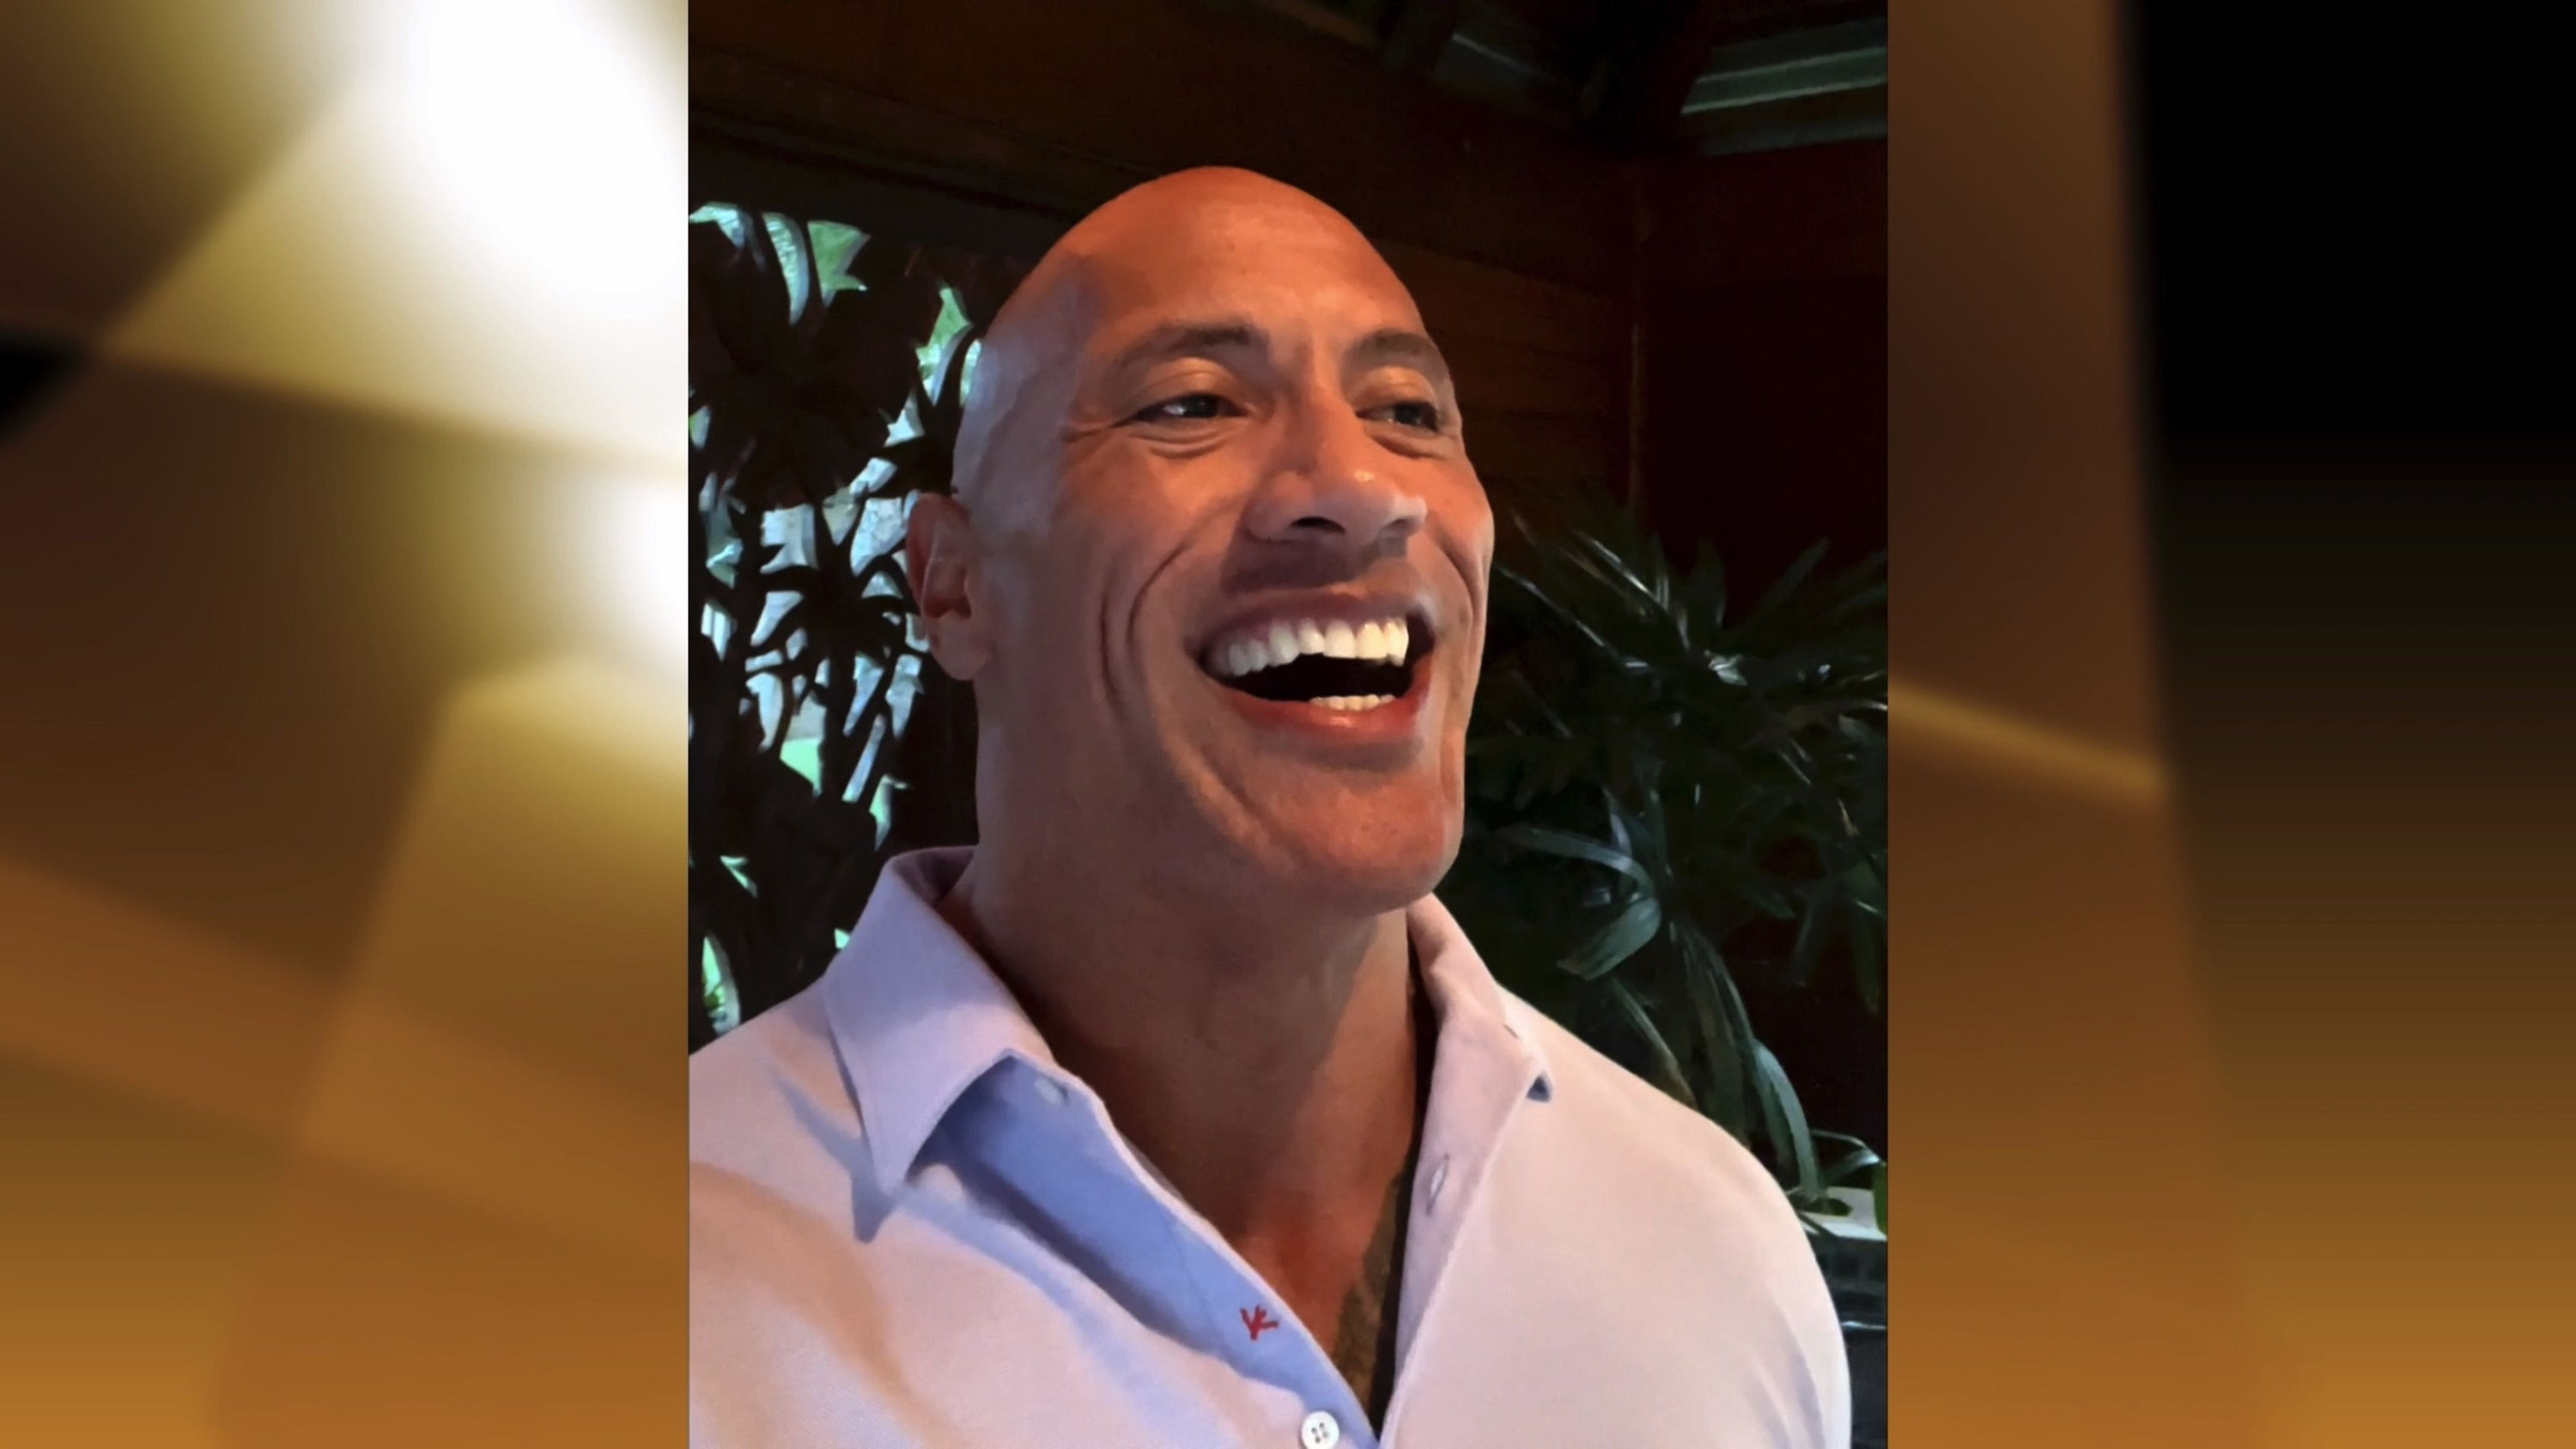 The Rock smiling widely